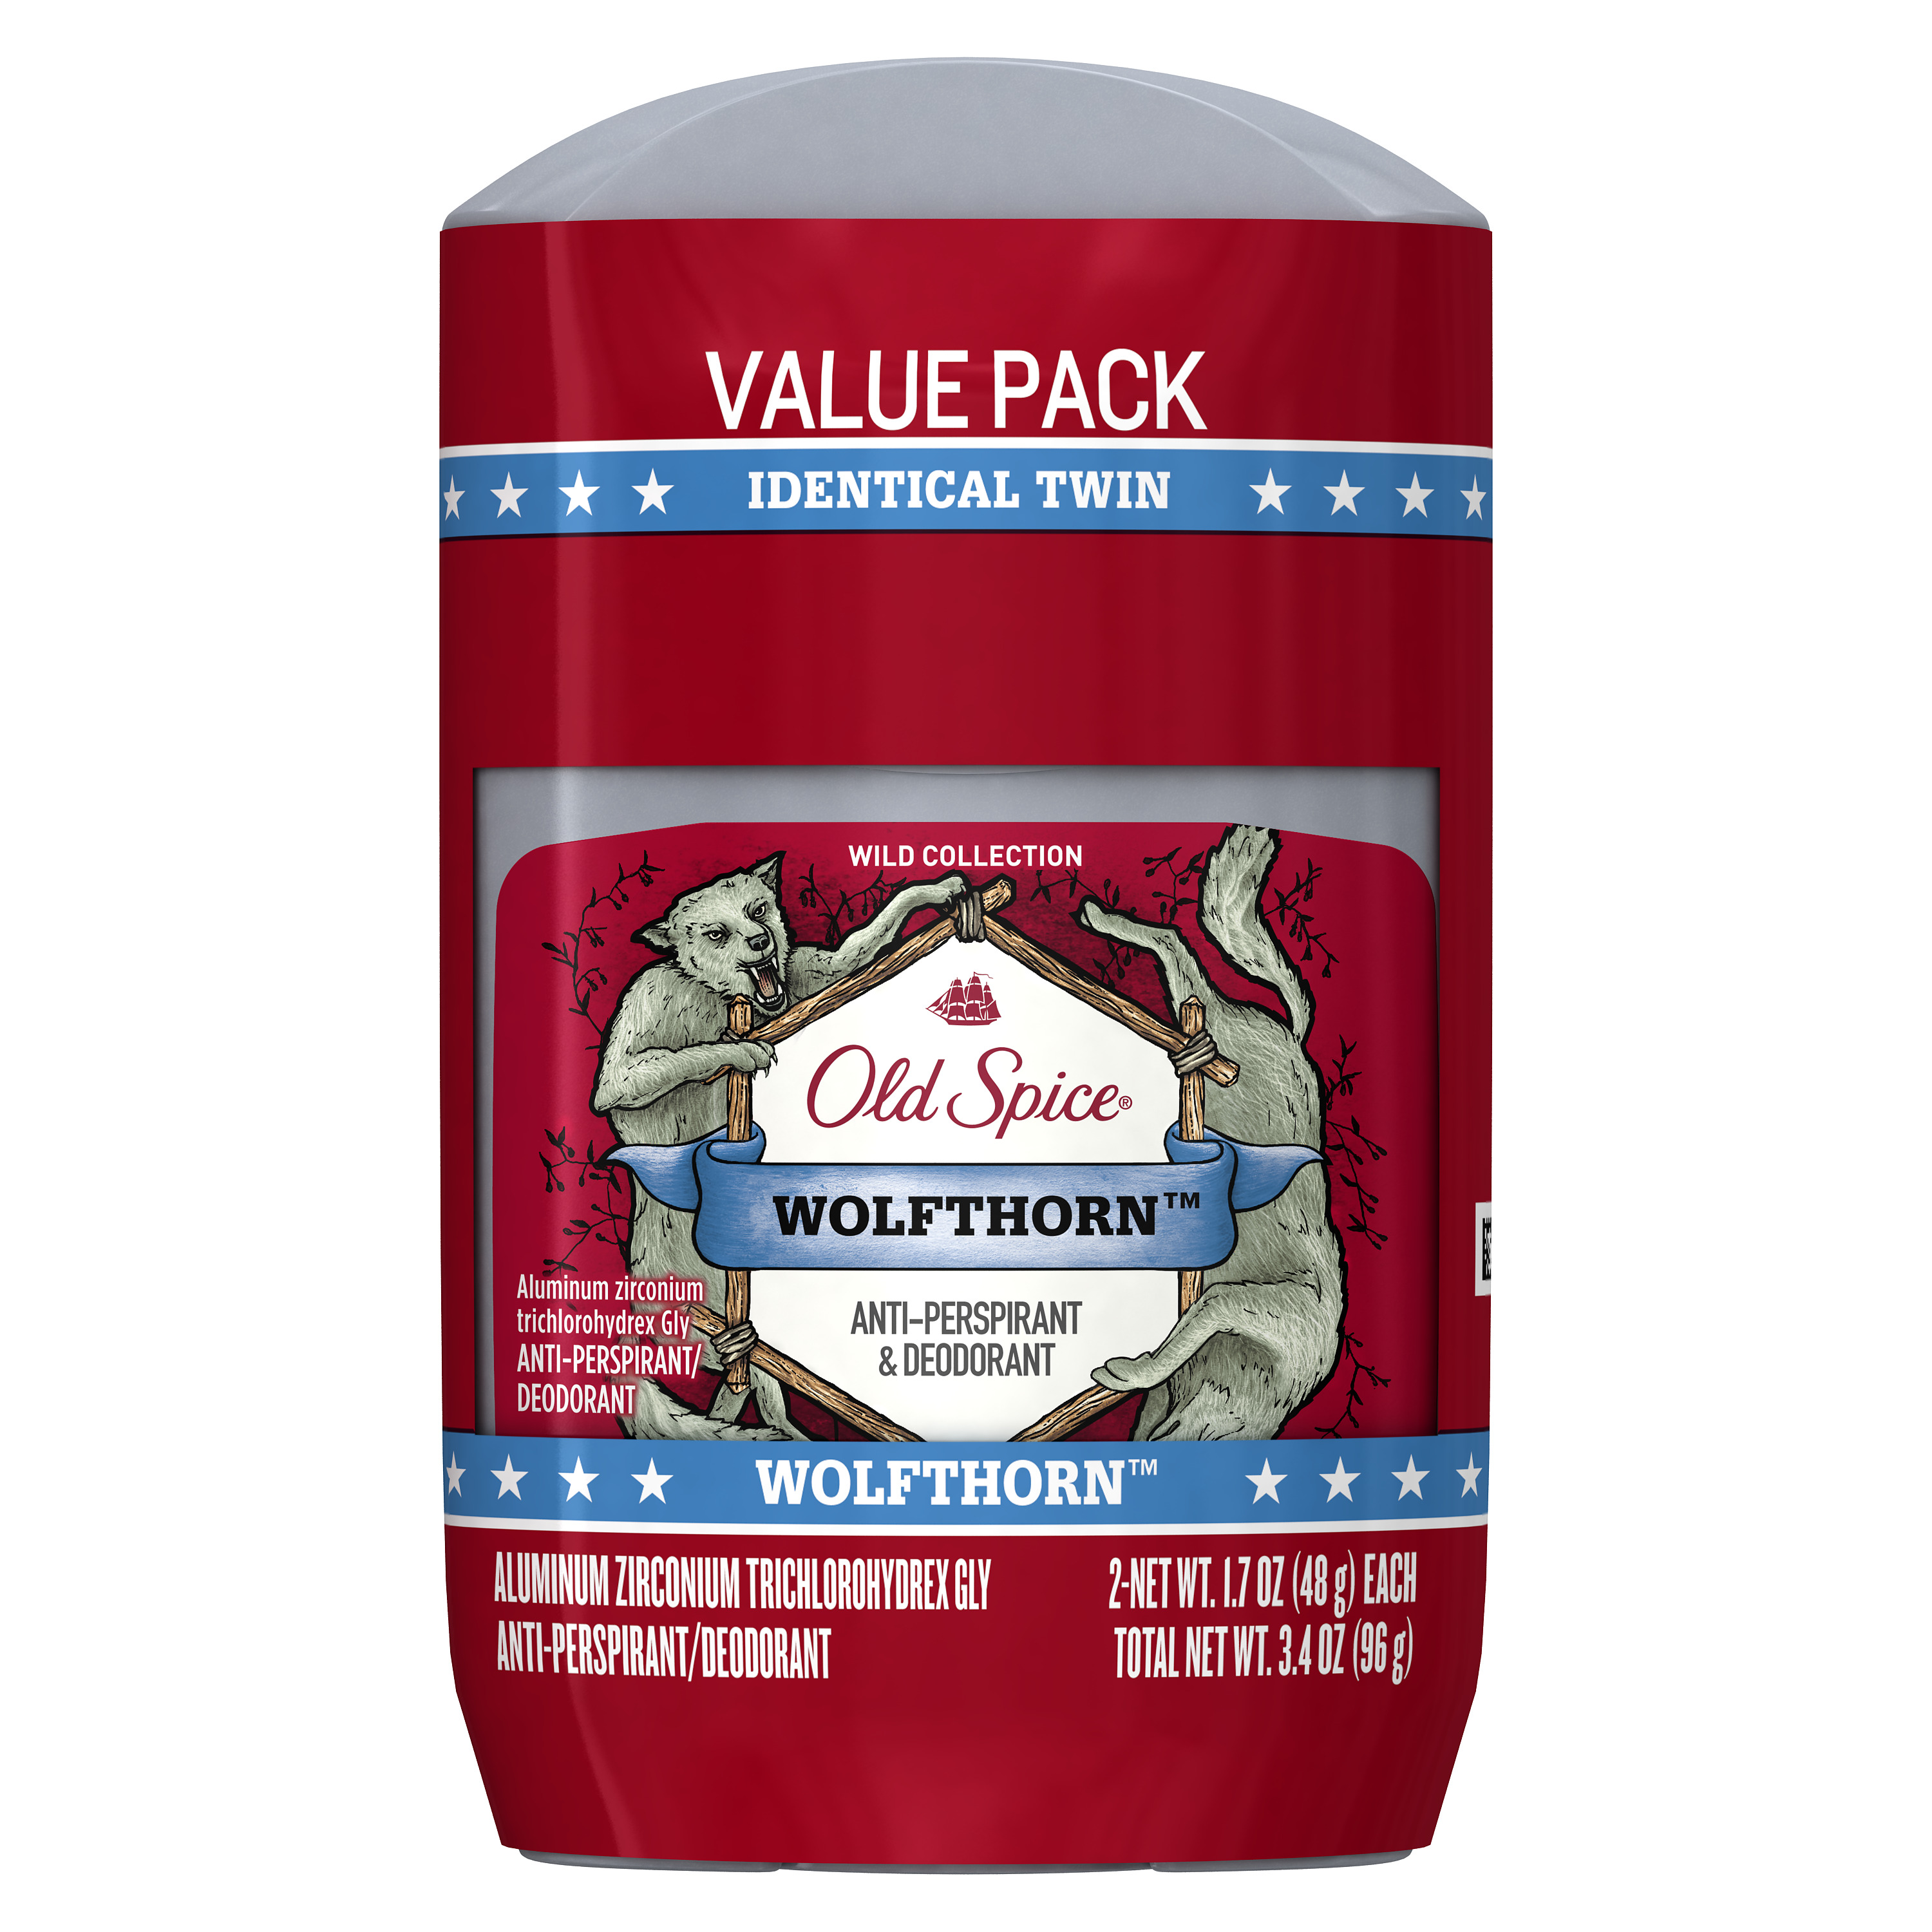 Old Spice Wild Collection Wolfthorn Scent Men's Invisible Solid Anti-Perspirant & Deodorant 1.7 Oz Twin Pack